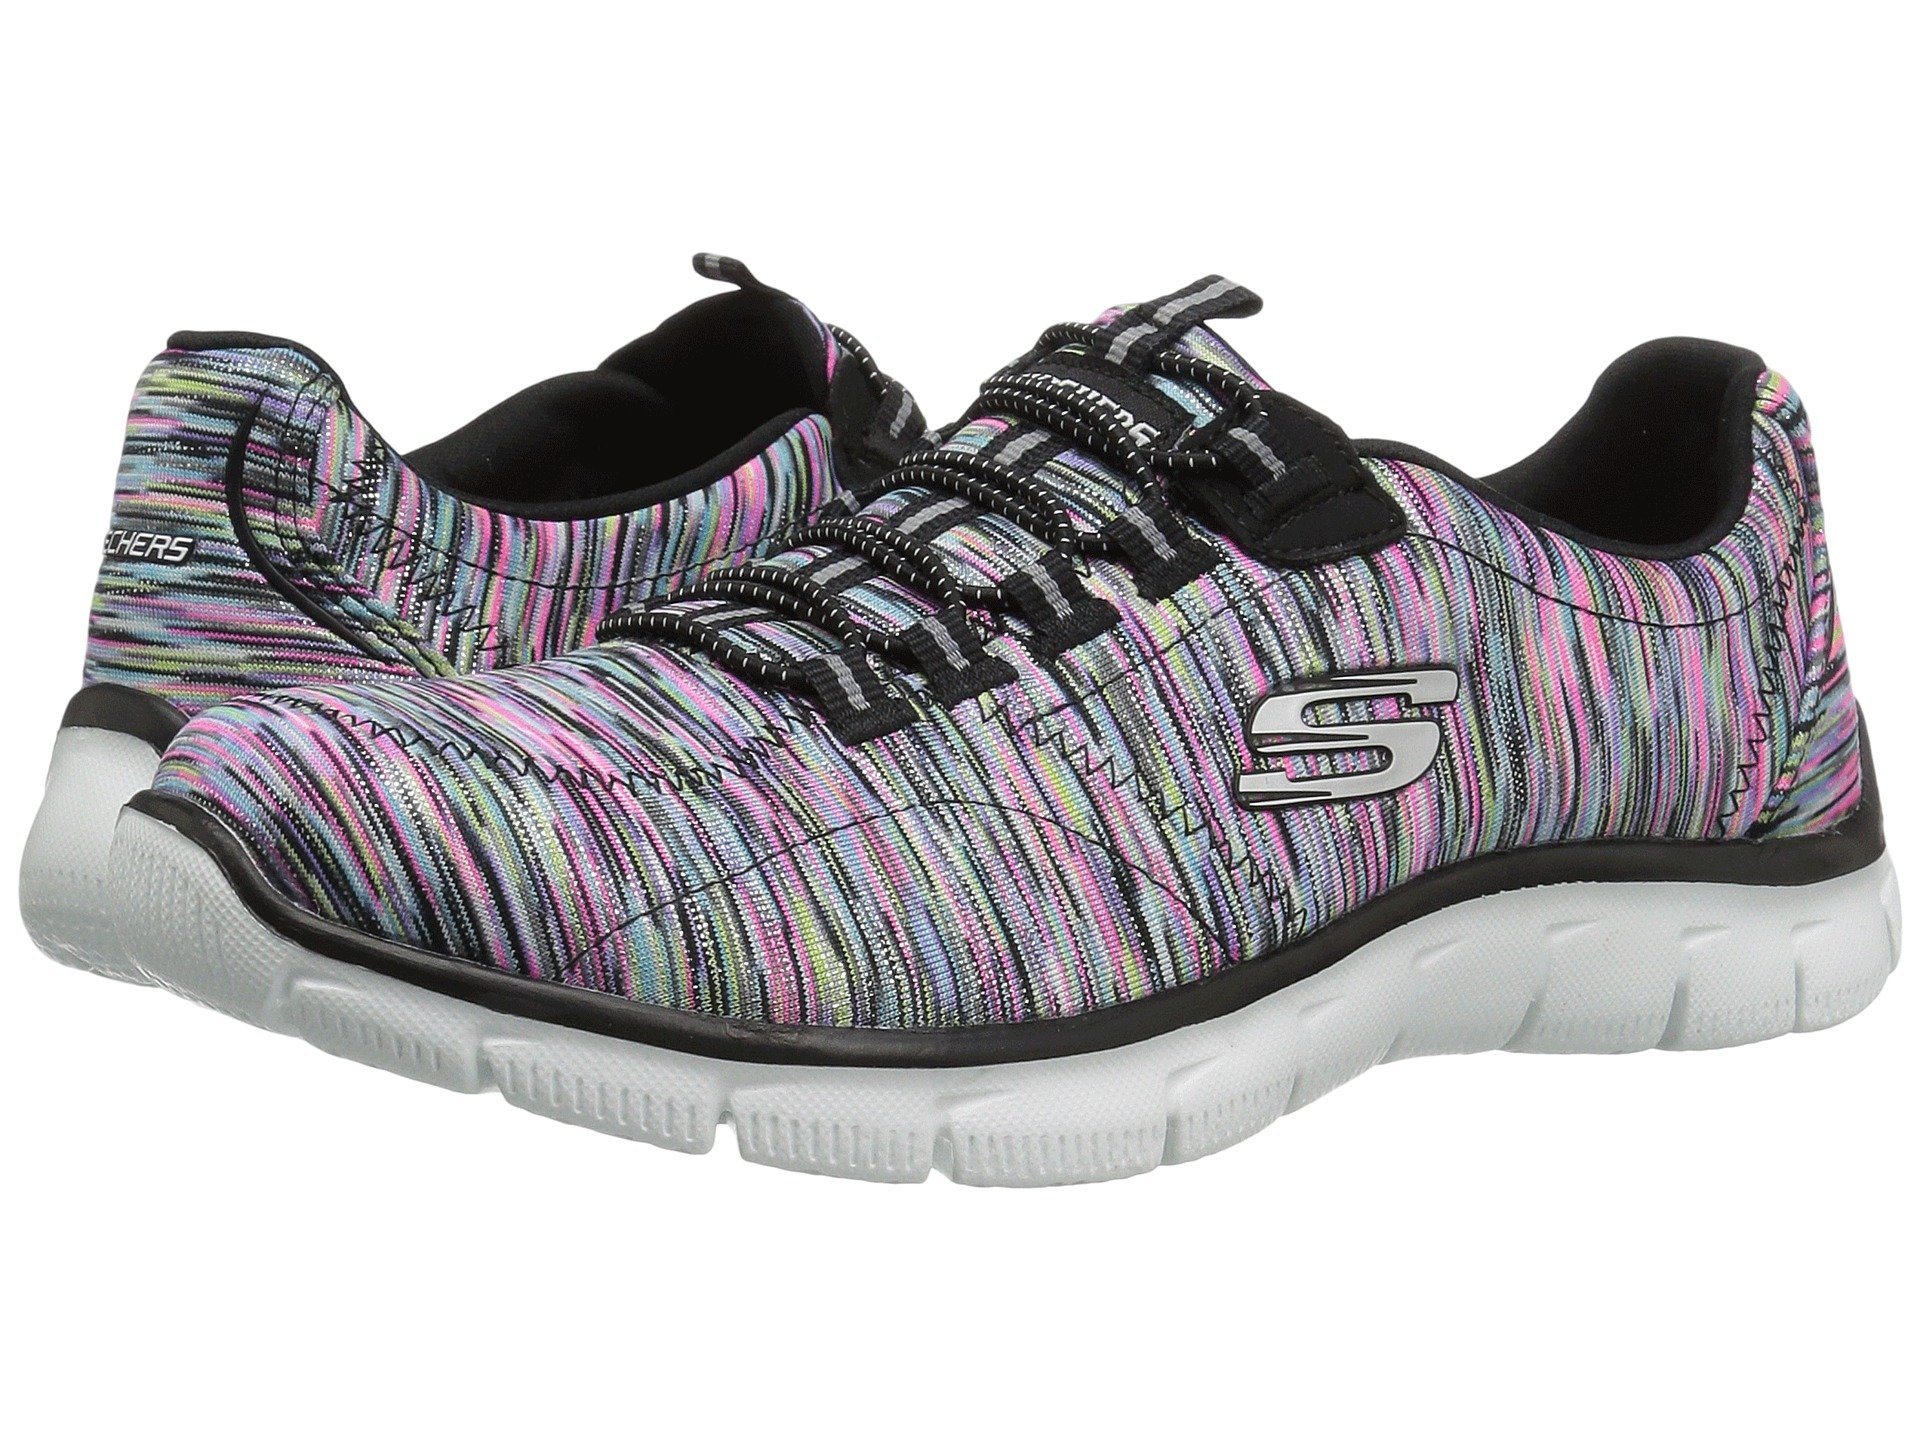 c6421f79ac35 Women s SKECHERS Shoes + FREE SHIPPING